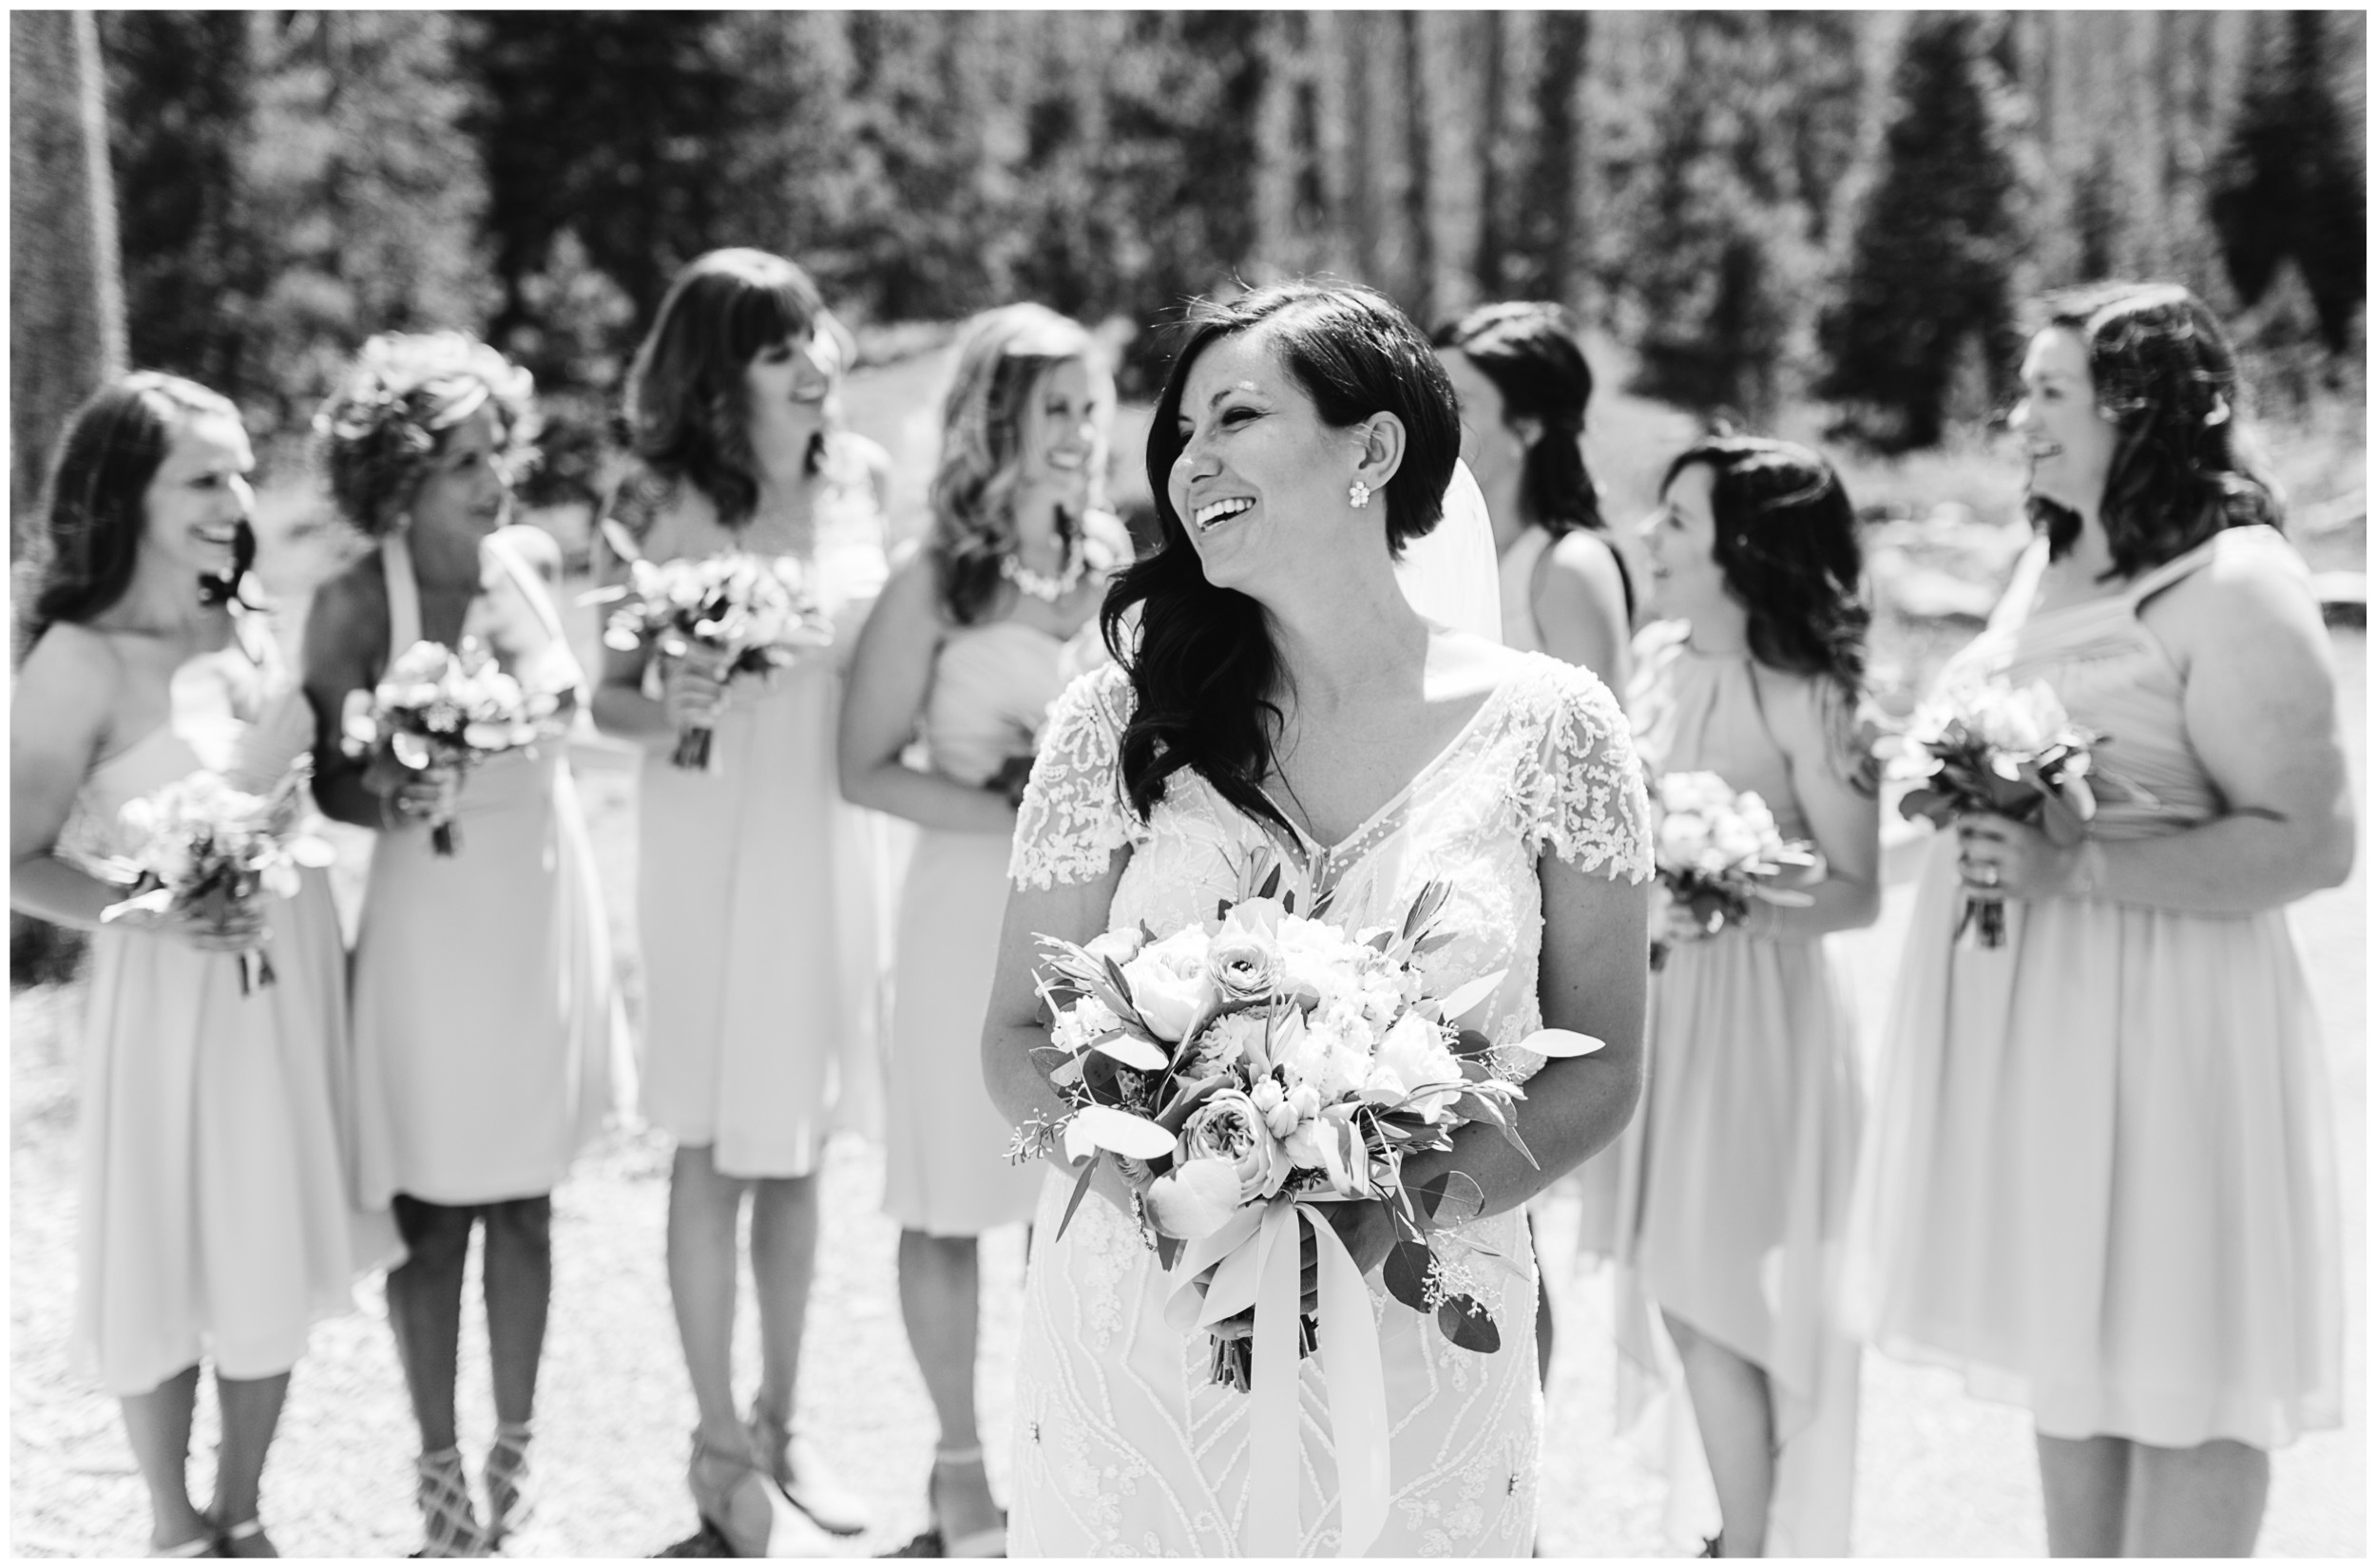 rocky_mountain_wedding_51.jpg